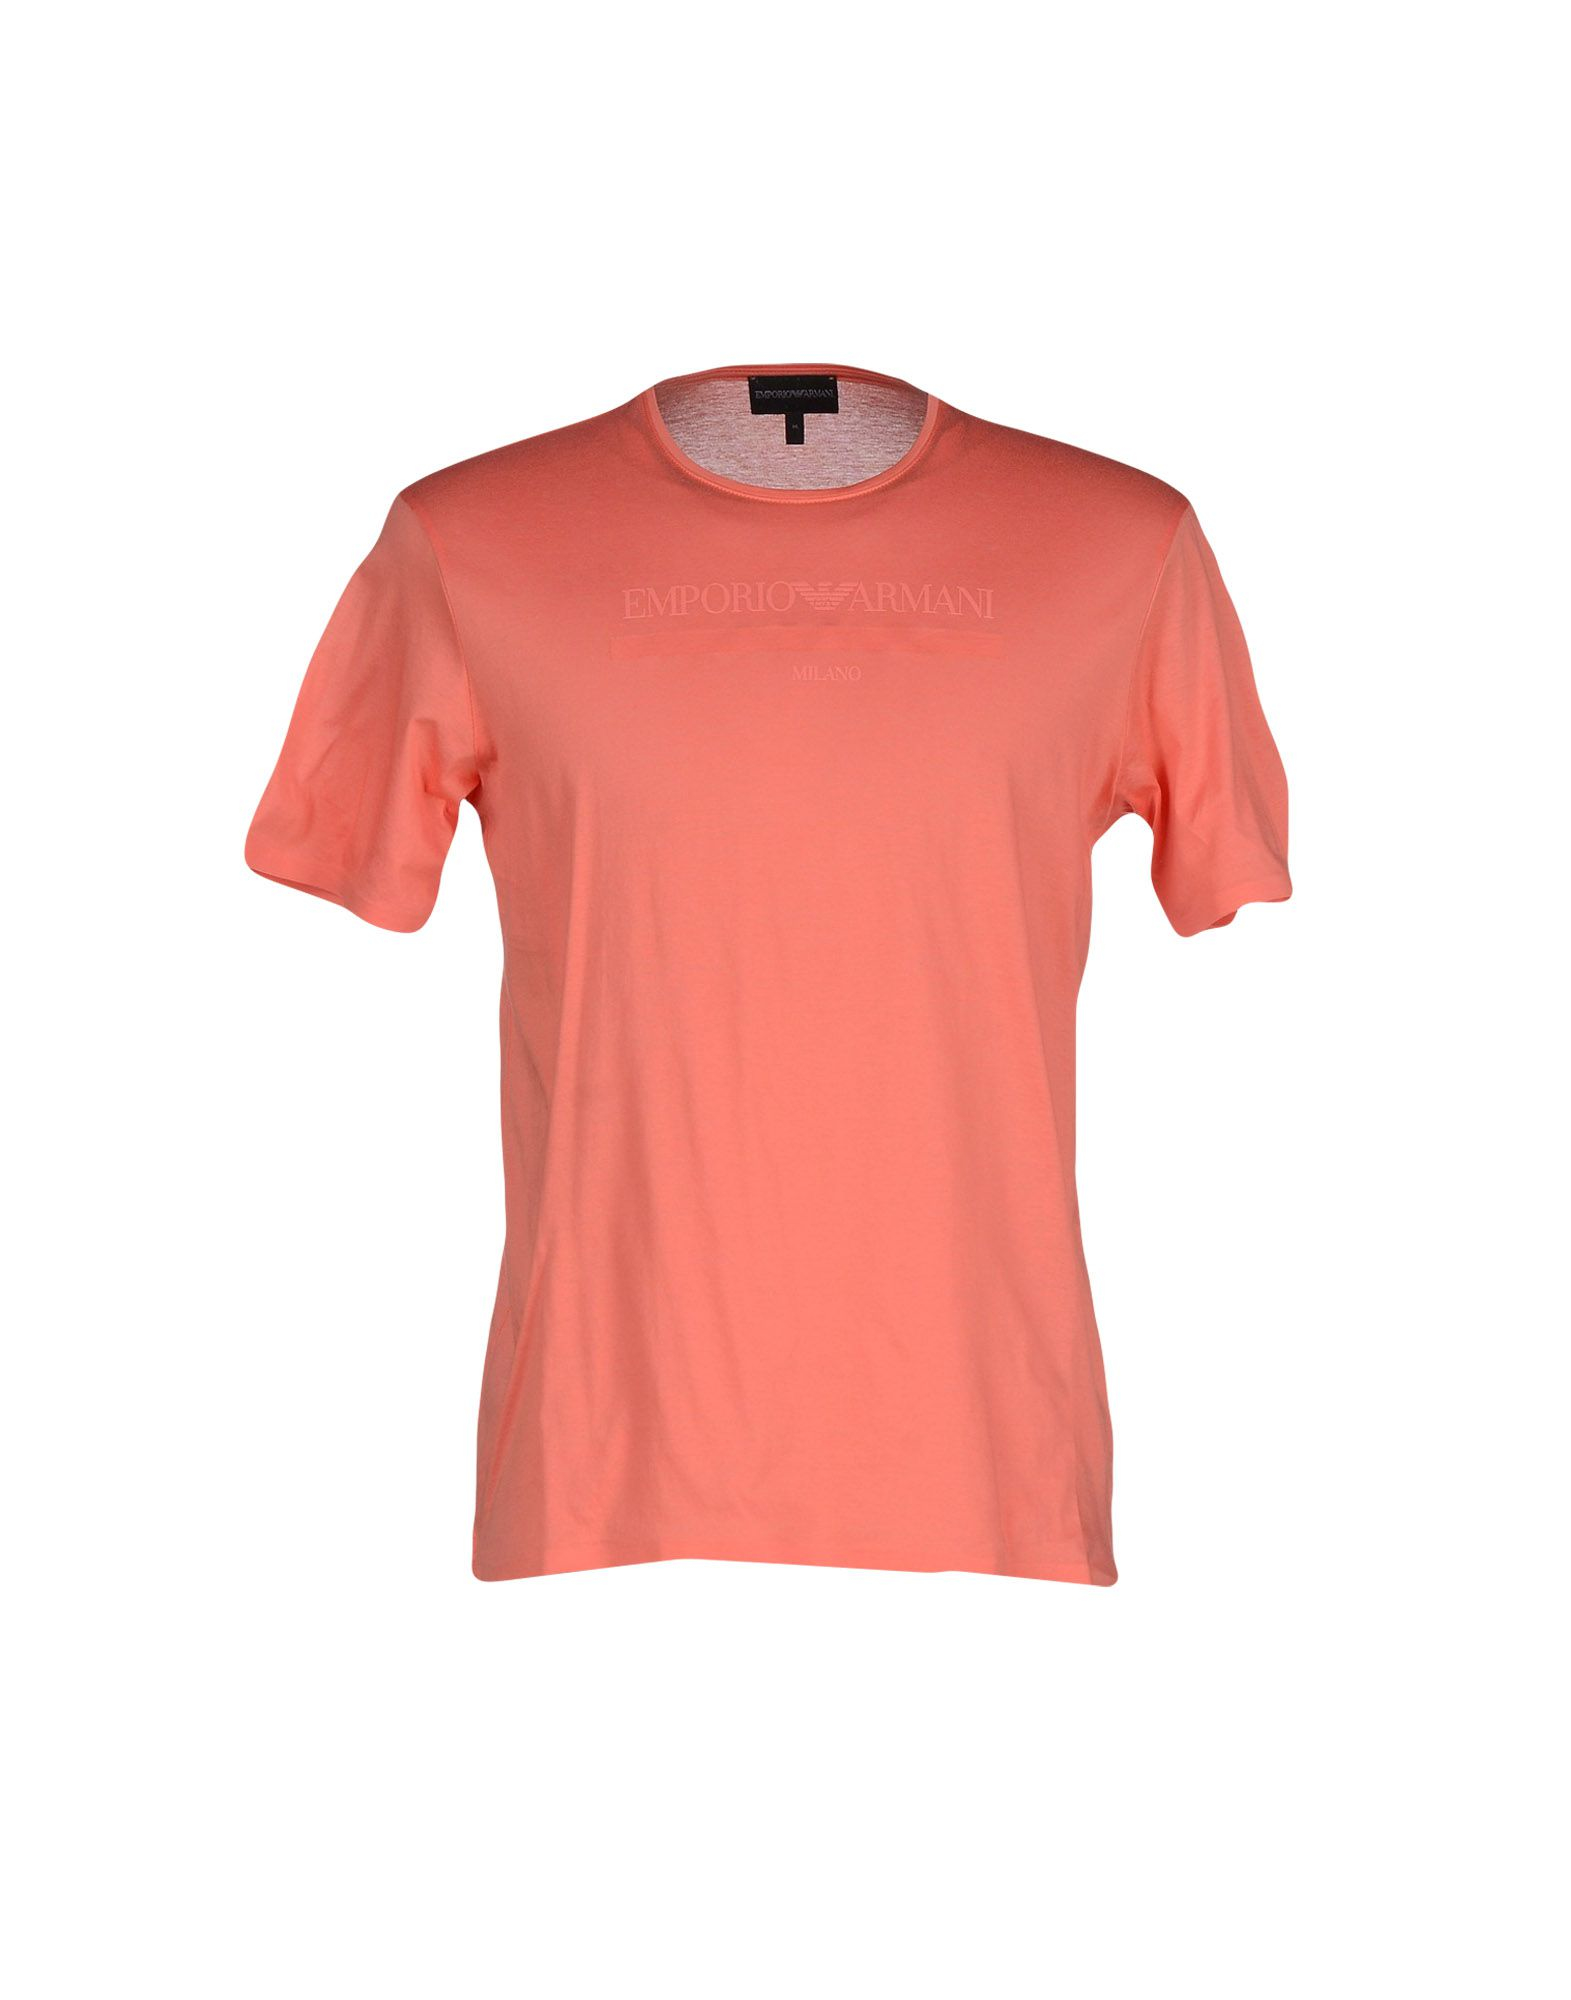 Emporio Armani T Shirt In Pink For Men Coral Save 47